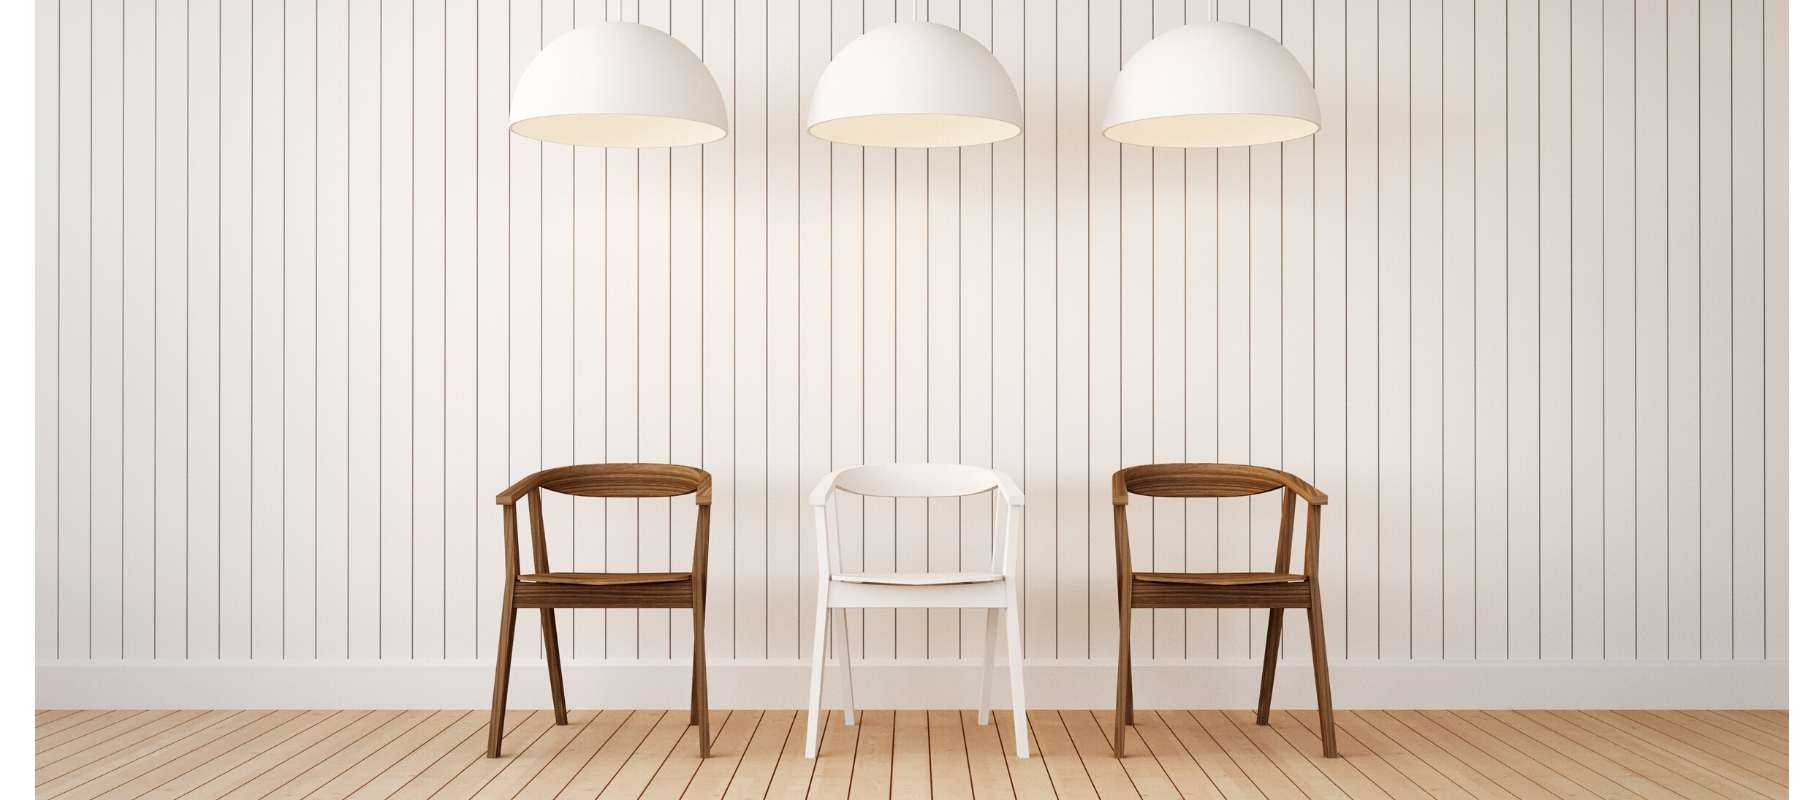 Wooden dining chairs with three white kitchen pendant lights